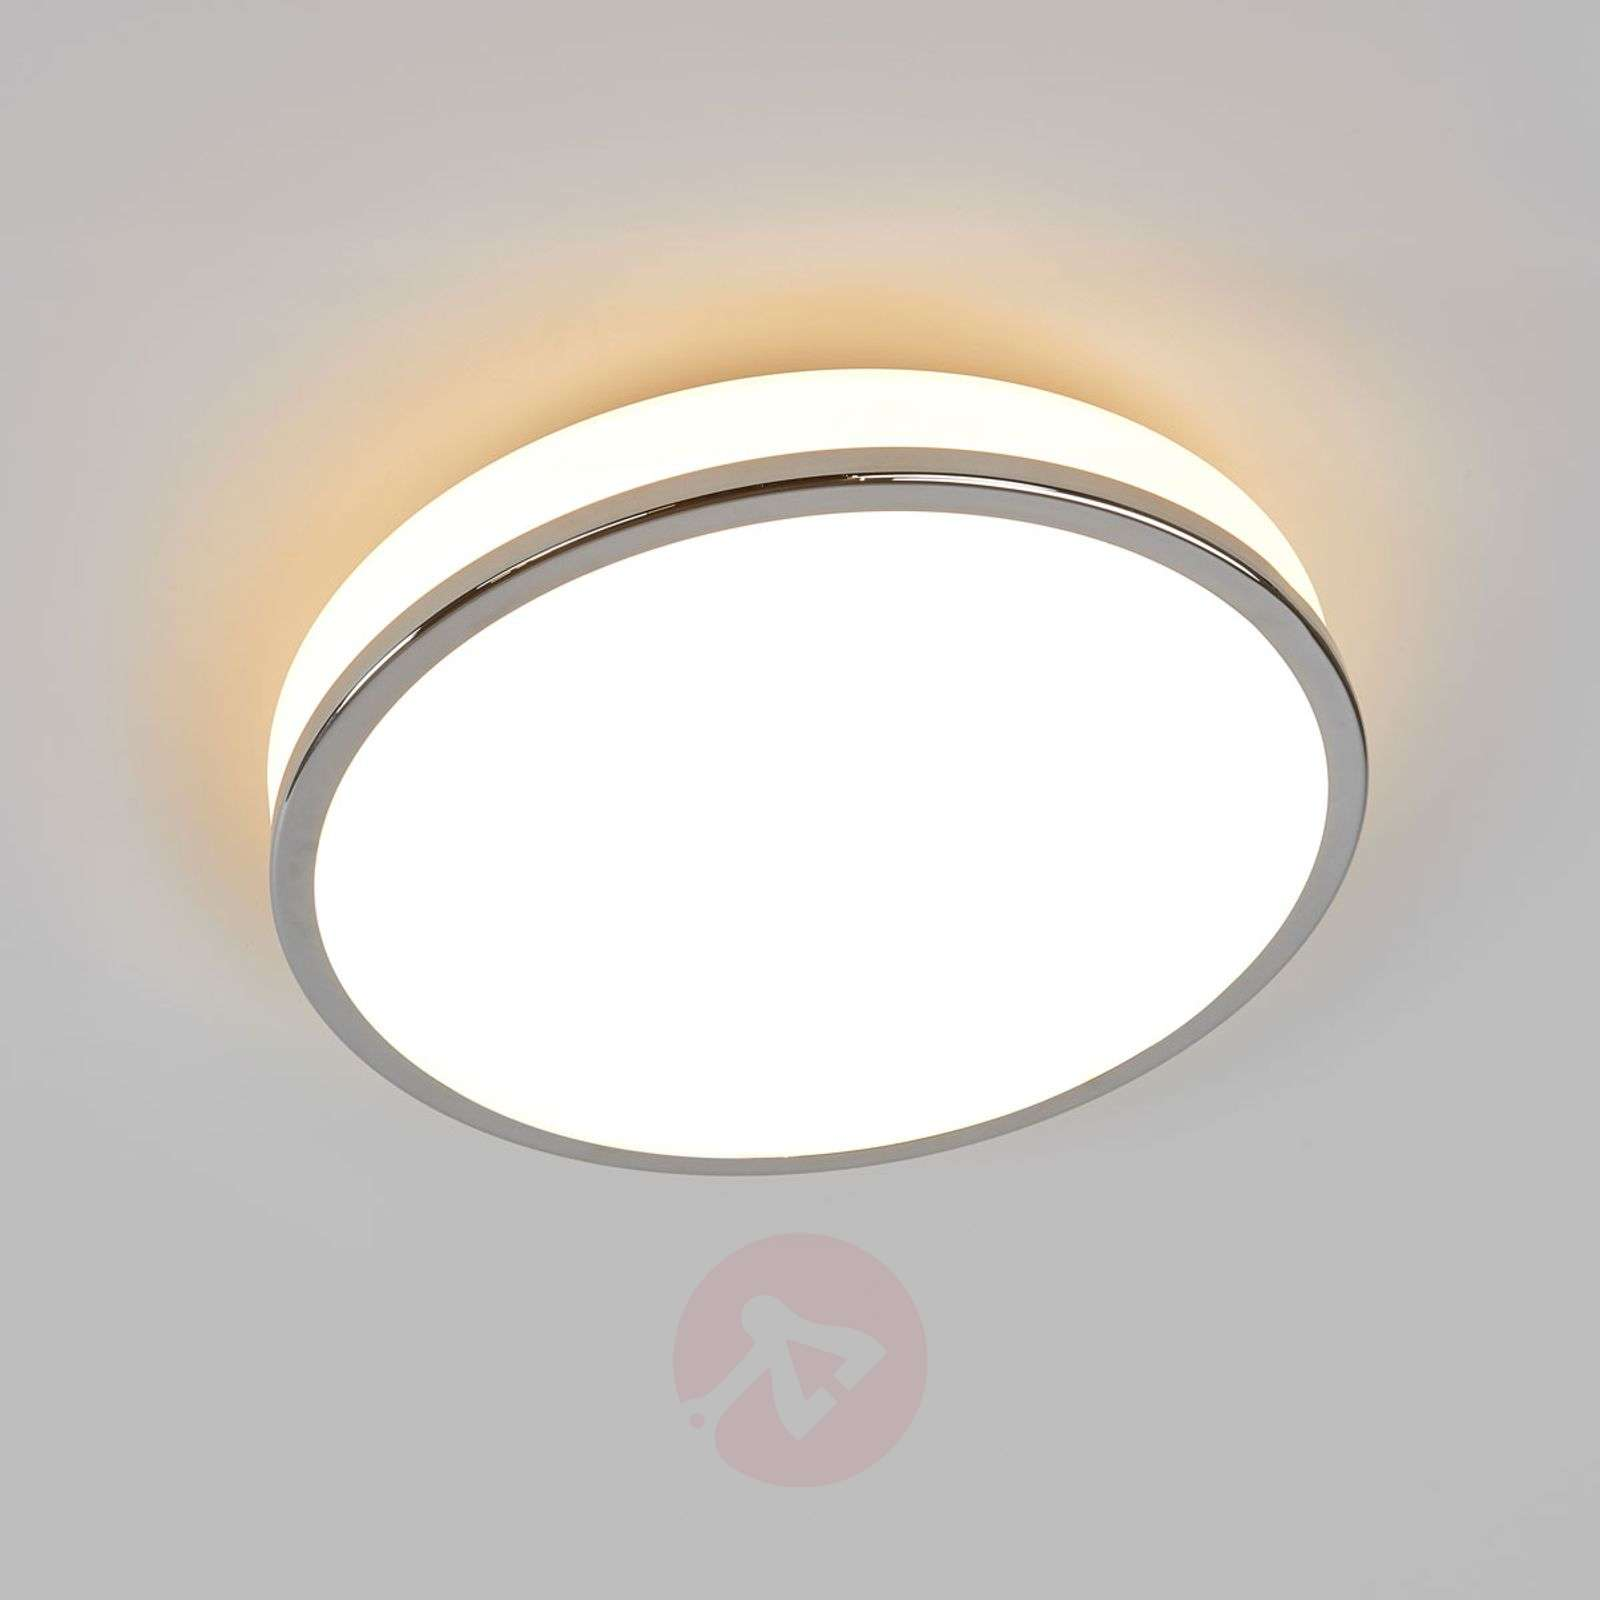 Round LED ceiling lamp Lyss with chrome frame IP44-9633042-01